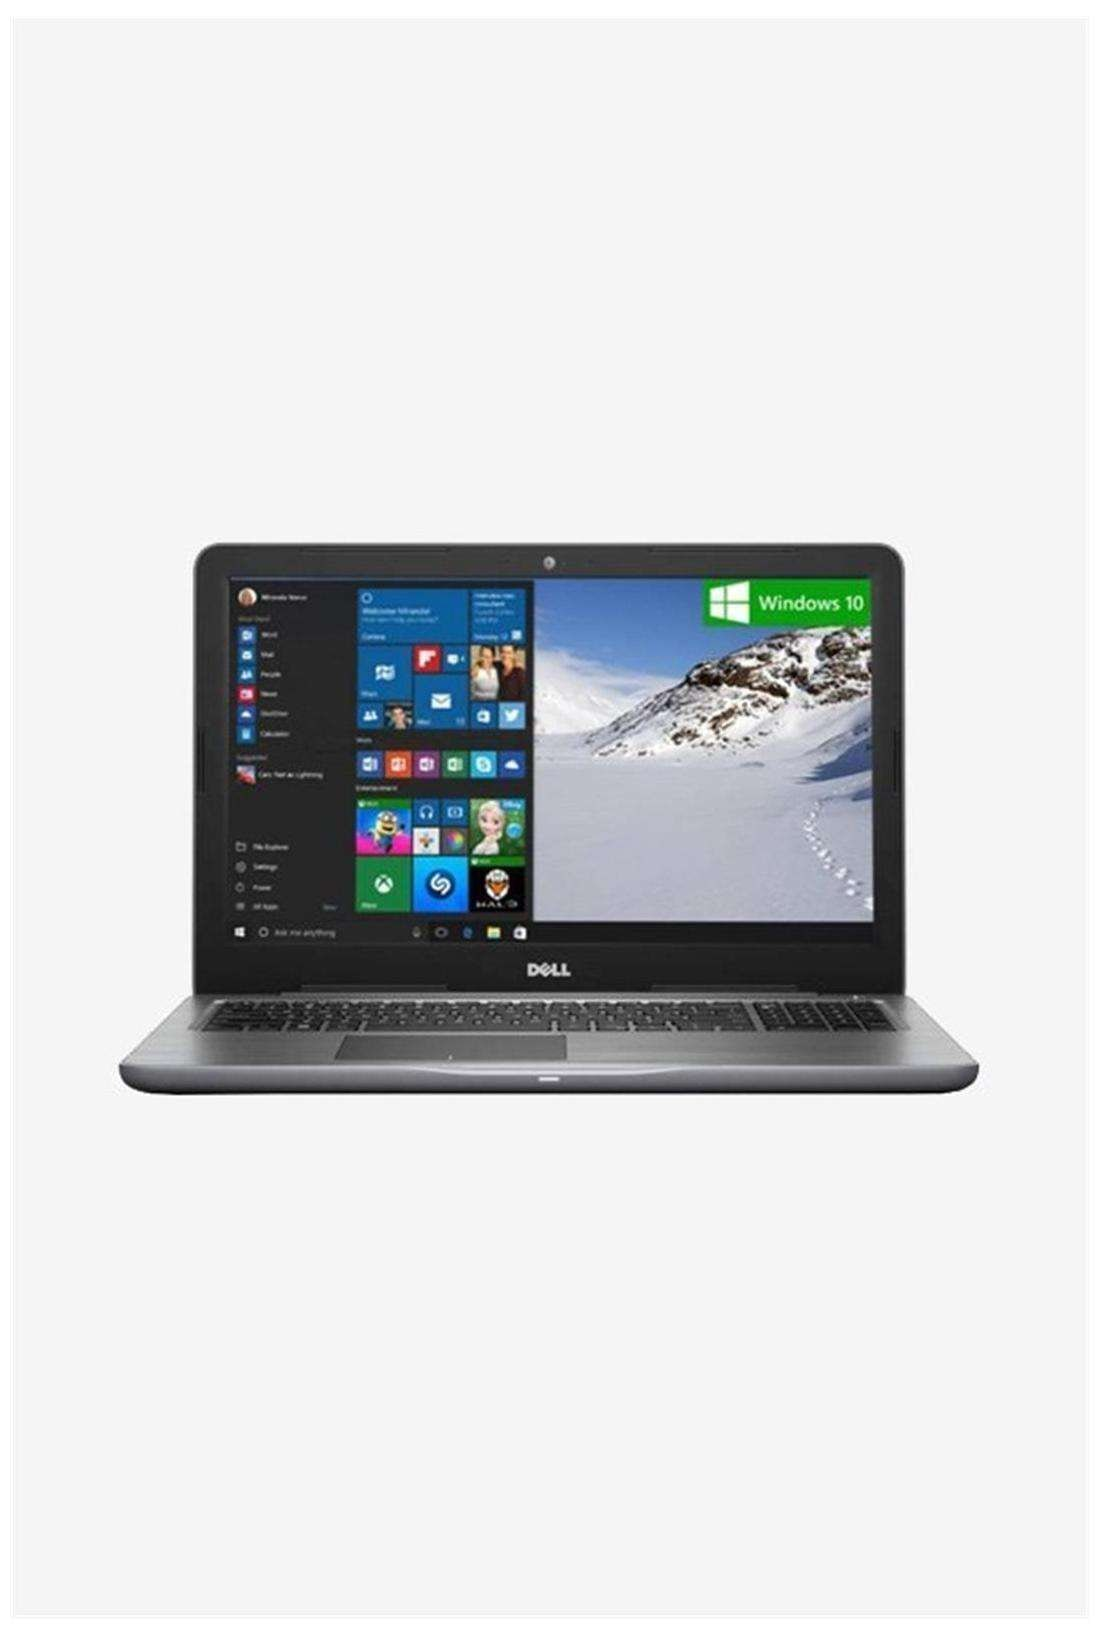 Dell Inspiron 15 5567 (A563506WIN9) (Core i3 (6th Gen)/4GB RAM/1TB HDD/15.6'' FHD/Windows 10) (Grey)